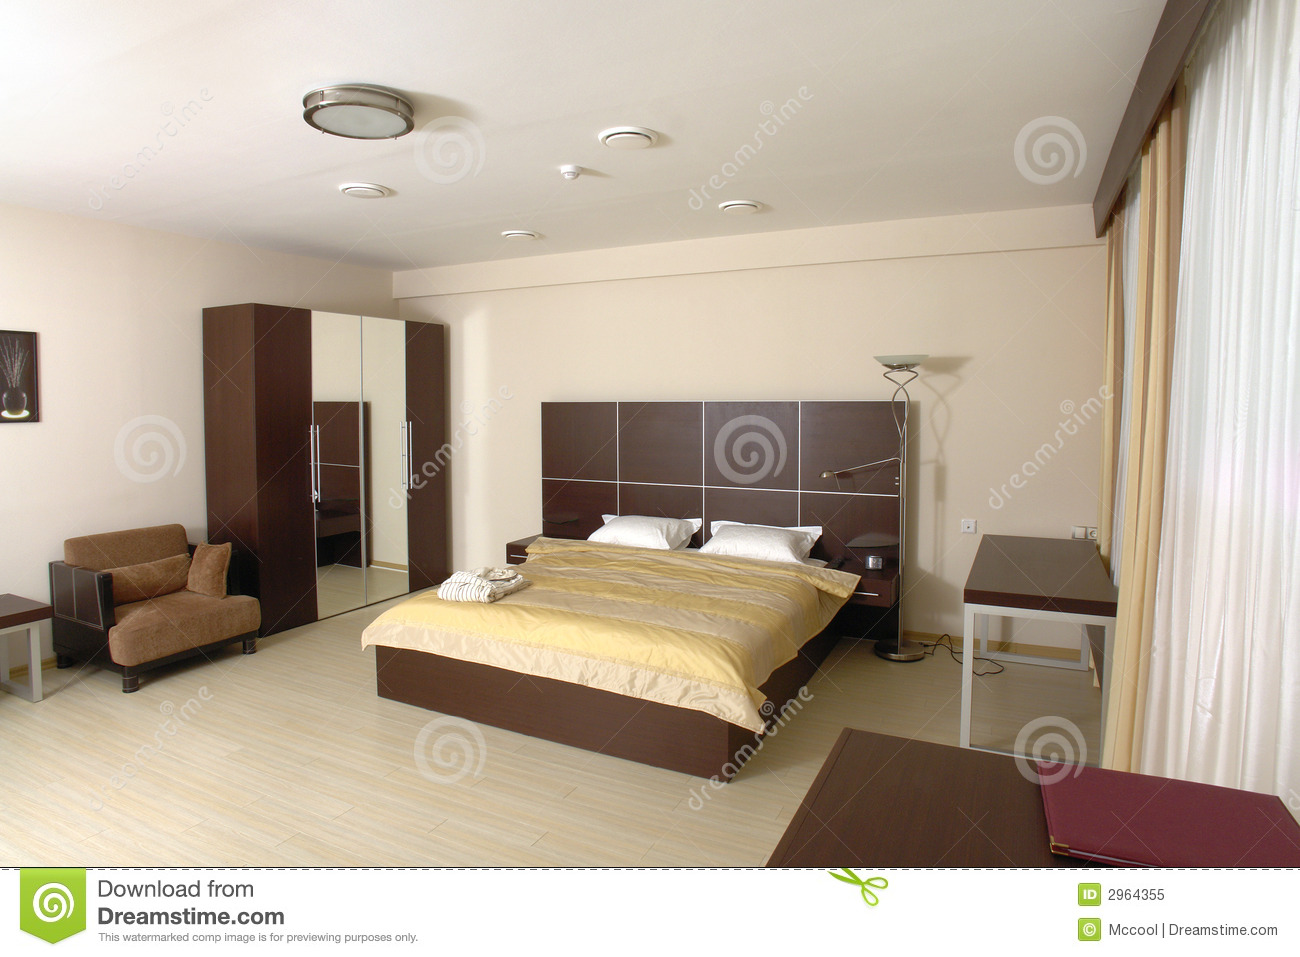 Chambre coucher moderne photo libre de droits image for Modele chambre adulte moderne